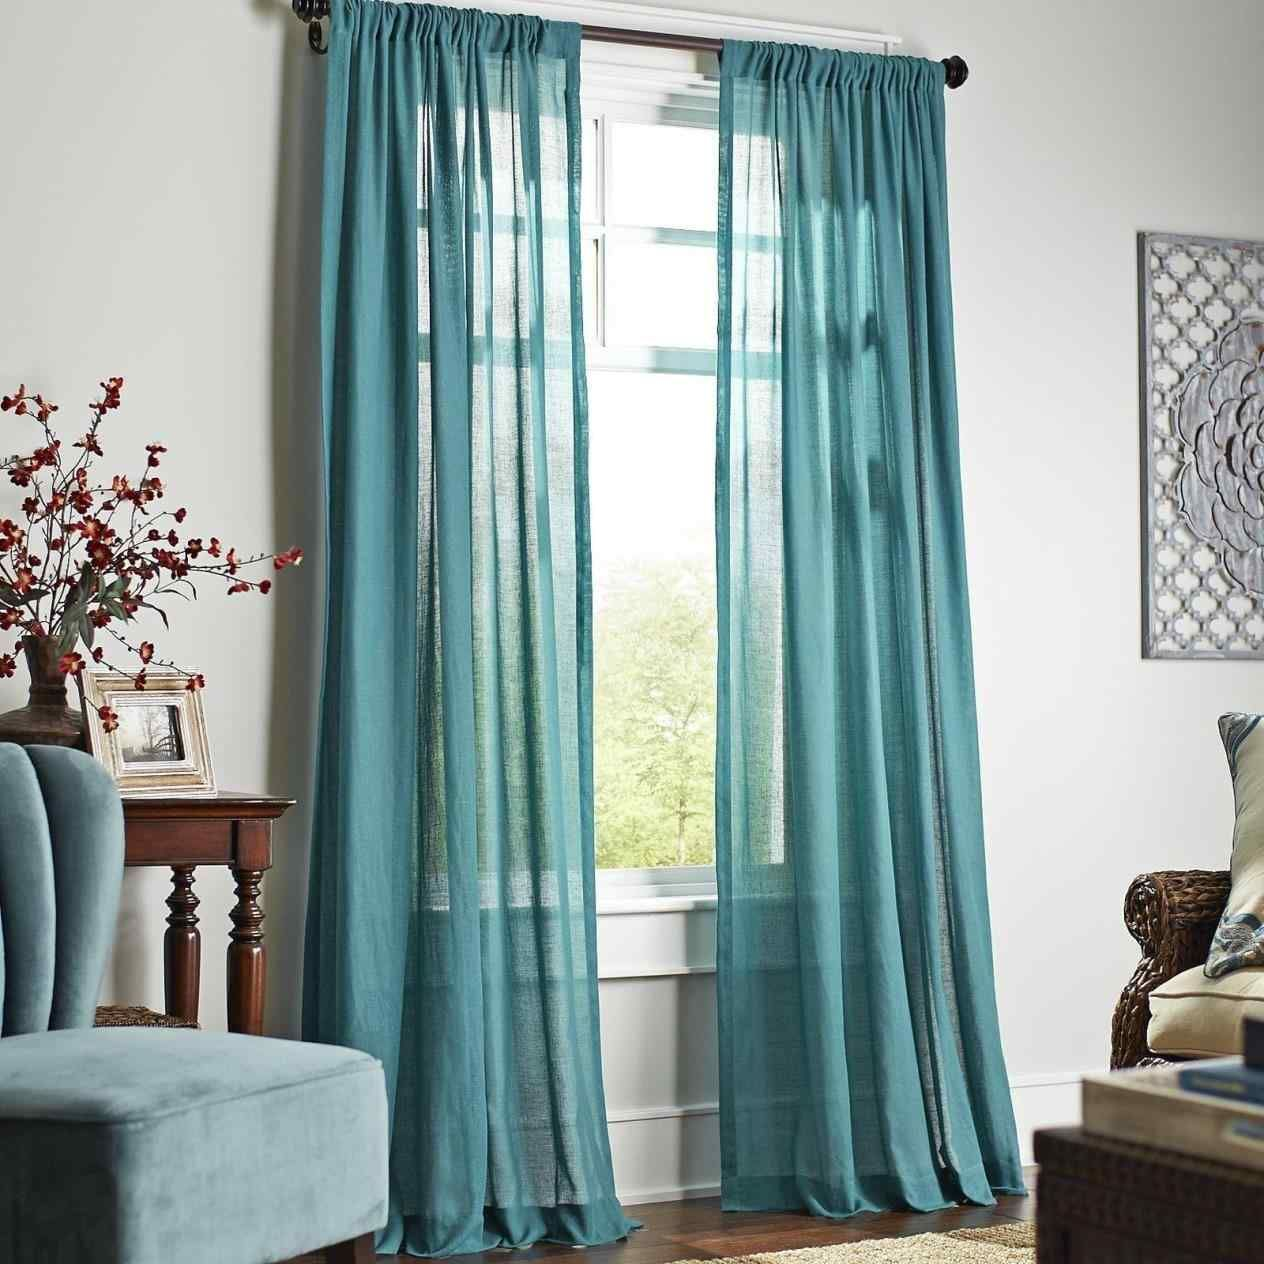 Top 10 Most Beautiful Puddling Curtains For Your Living Room images